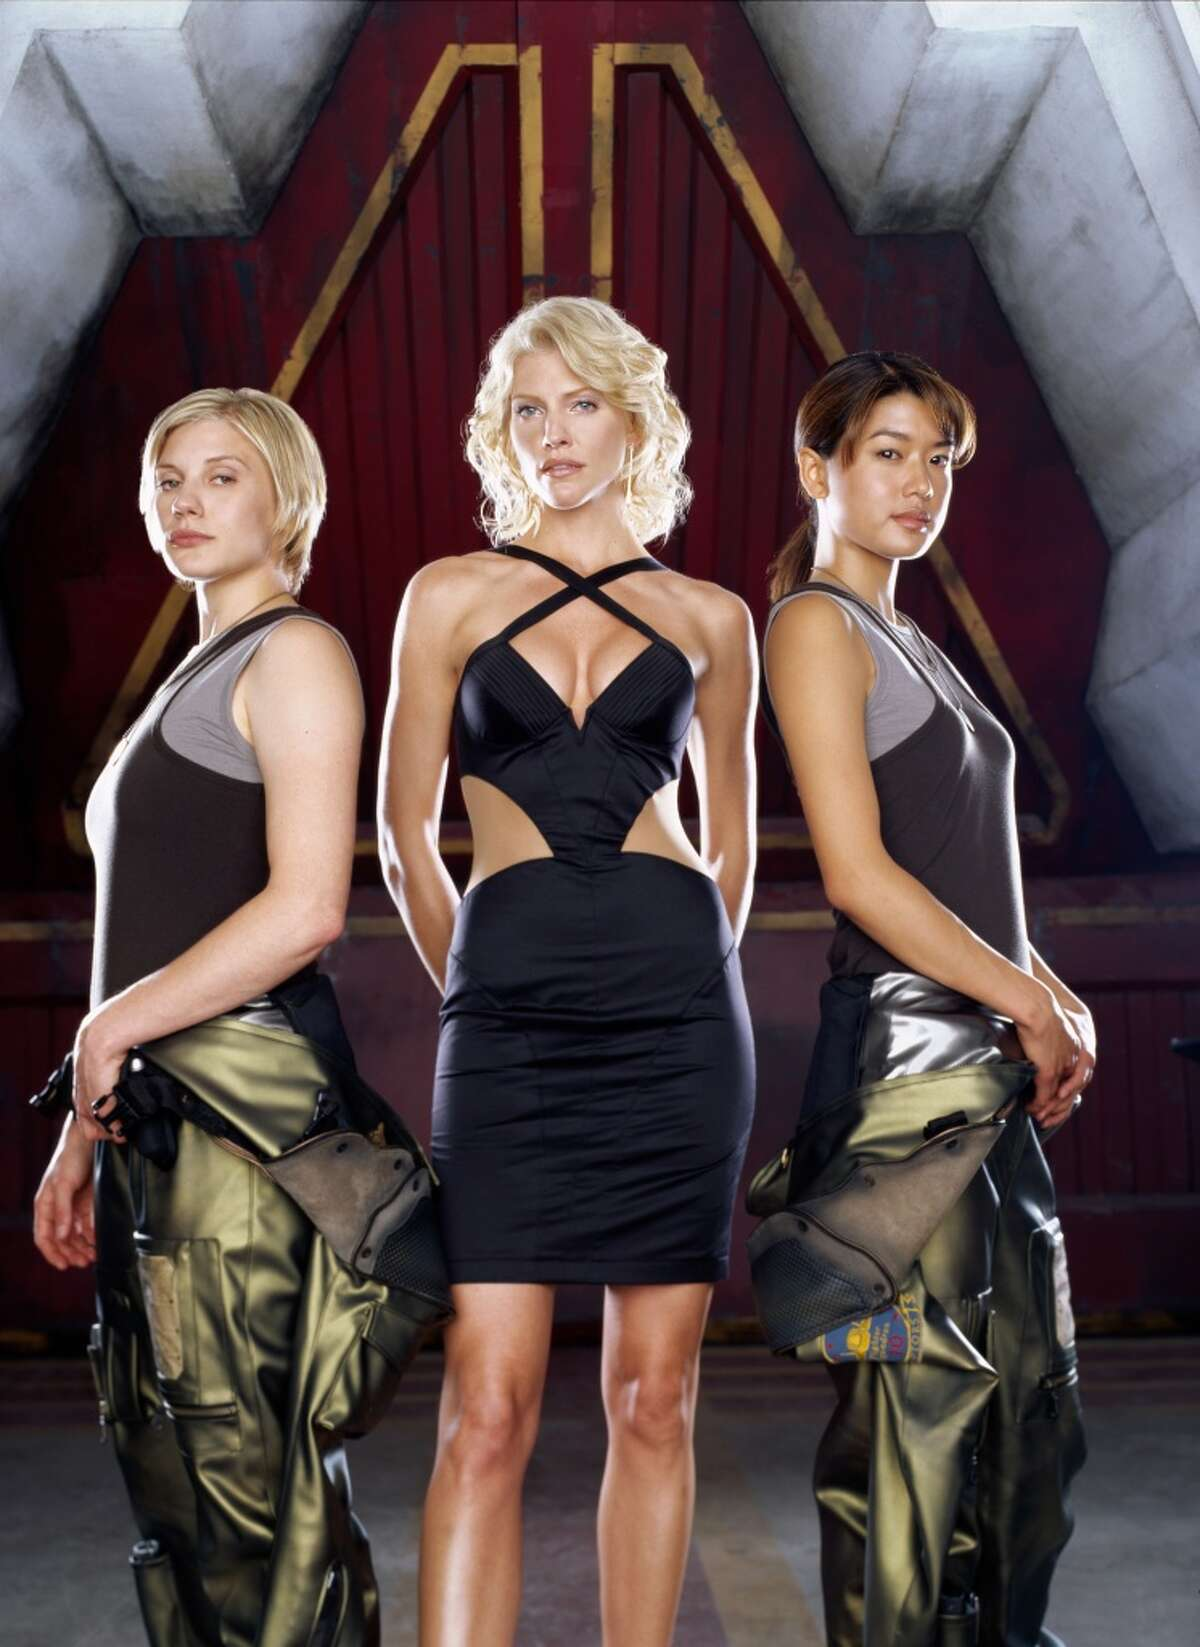 Are you a ''Battlestar Galactica'' fan? In honor of Syfy's recent airing of the web series ''Blood & Chrome,'' here's a look at your favorite actors. Pictured are Katee Sackhoff as Starbuck, left, Tricia Helfer as Number Six, center, Grace Park as Boomer, from Season 1.